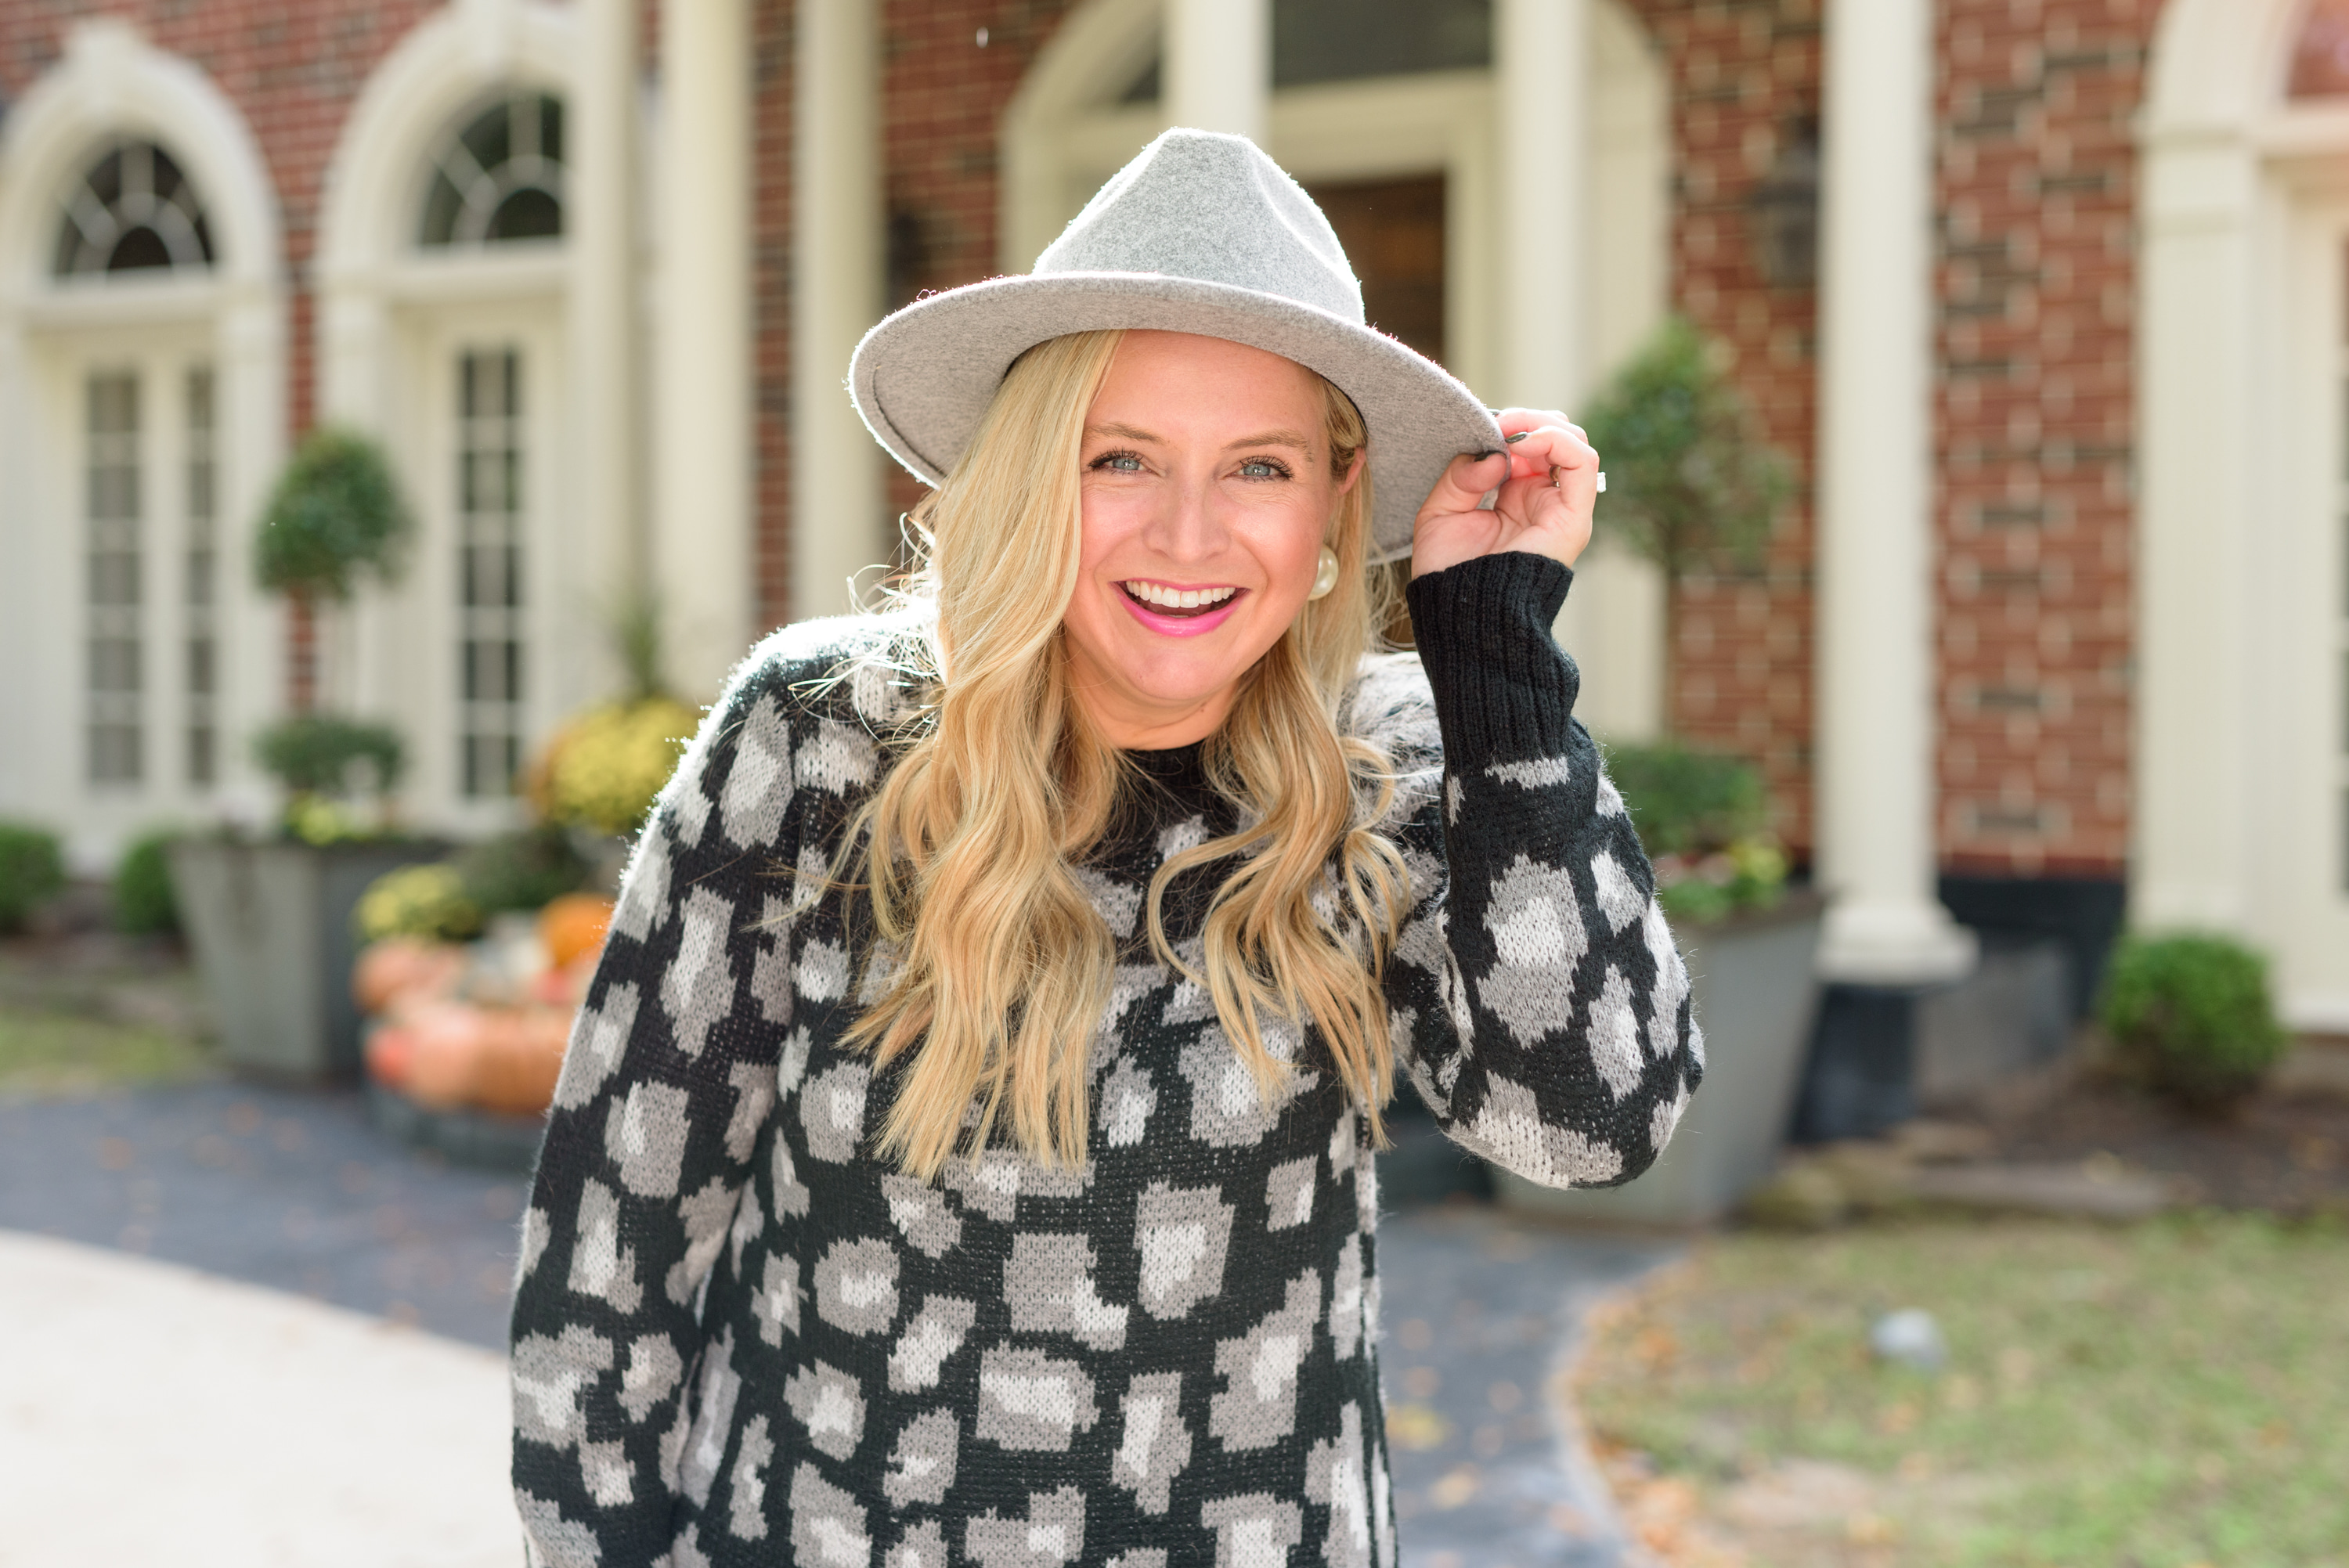 Fall Clothing by popular Houston fashion blog, Fancy Ashley: image of a woman wearing a Walmart Scoop Women's Leopard Print Sweater Dress, Walmart Scoop Alexandra Women's Over the Knee Heeled Boots, and Walmart Time and Tru Women's Chenille Fedora with Braided Trim.